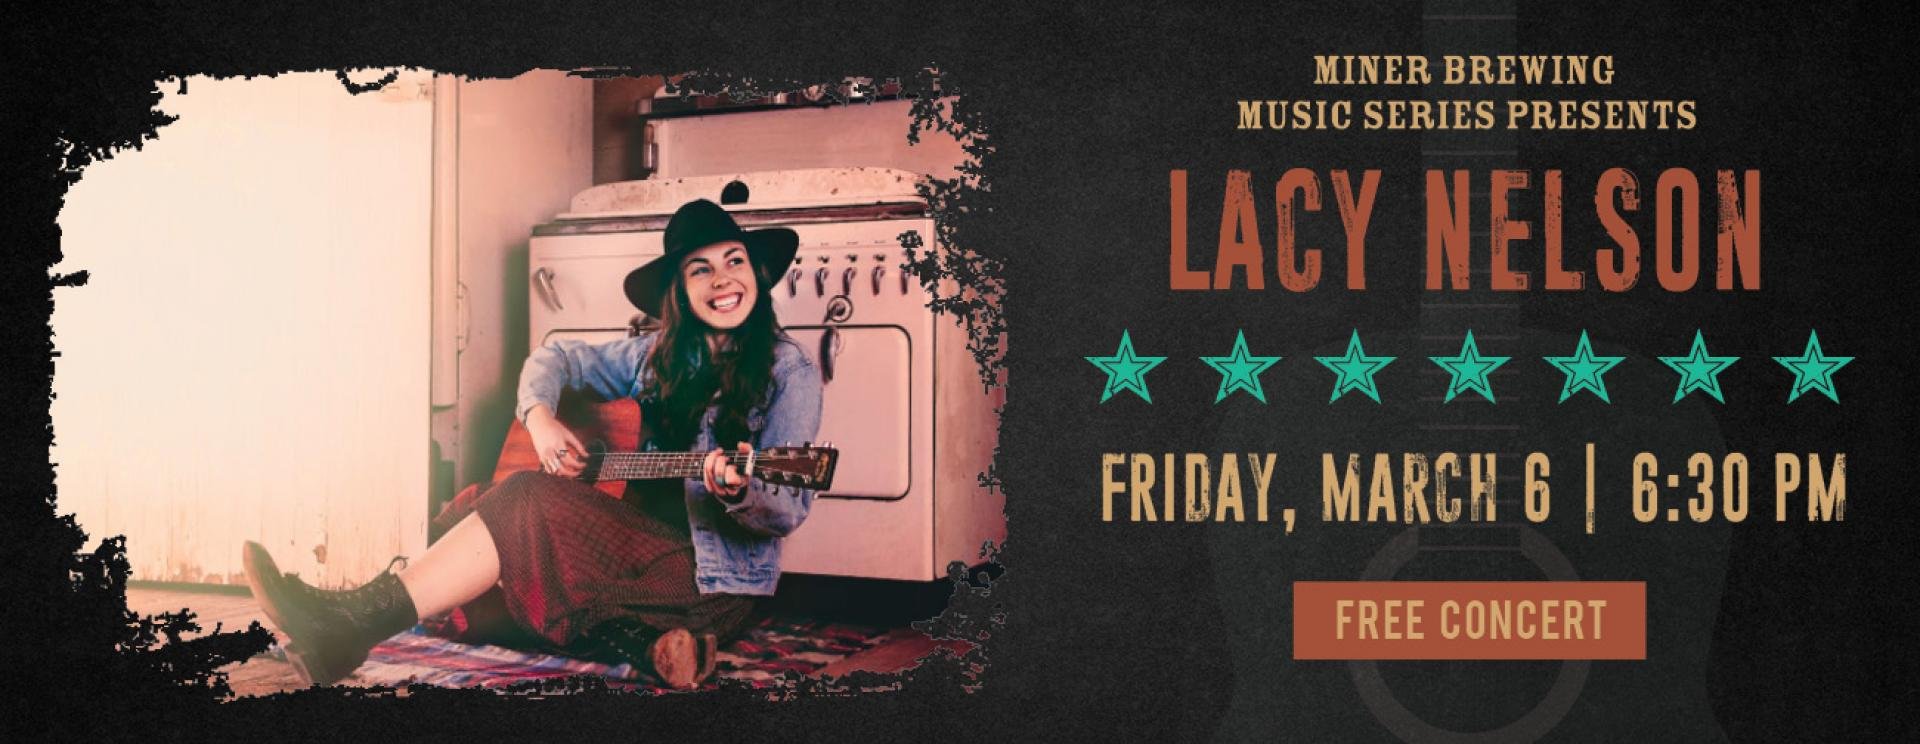 Miner Brewing Music Series Presents: Lacy Nelson